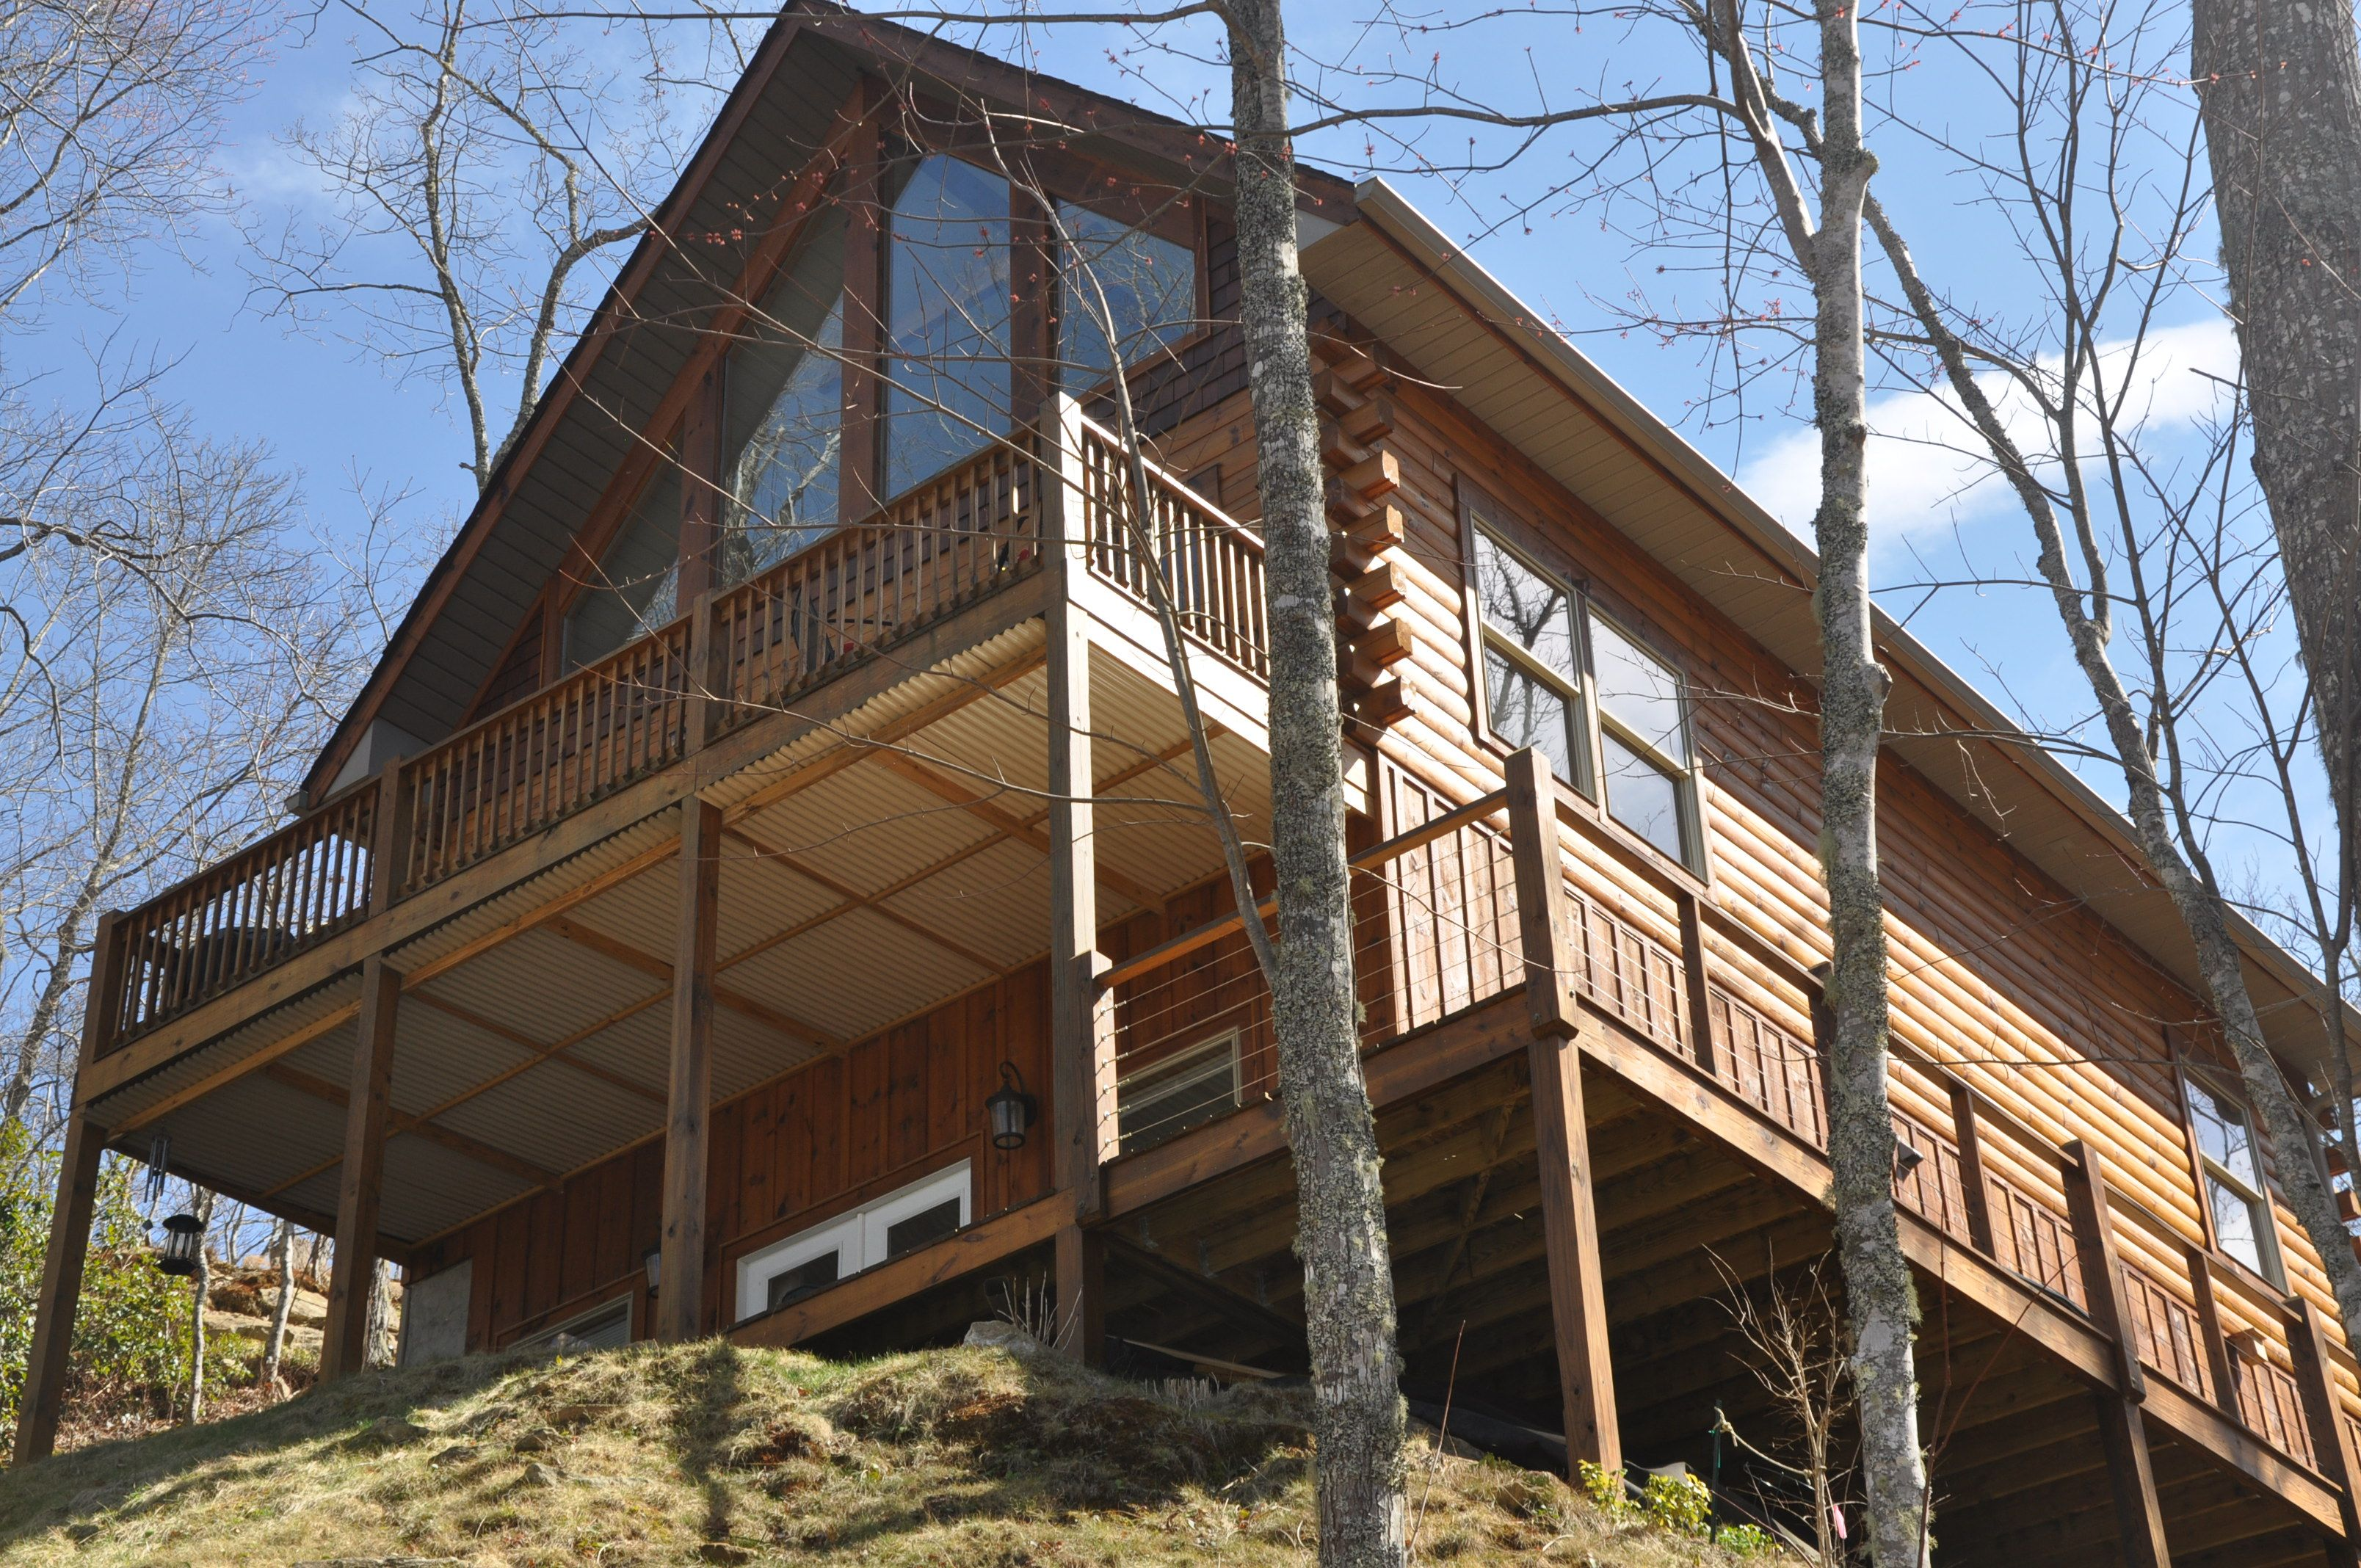 Northern Sky Cabin Is High On A Secluded Mountainside Outside Of Cherokee Nc Northern Sky Cabin North Carolina Cabin Rentals Bryson City Cabins E Cabin